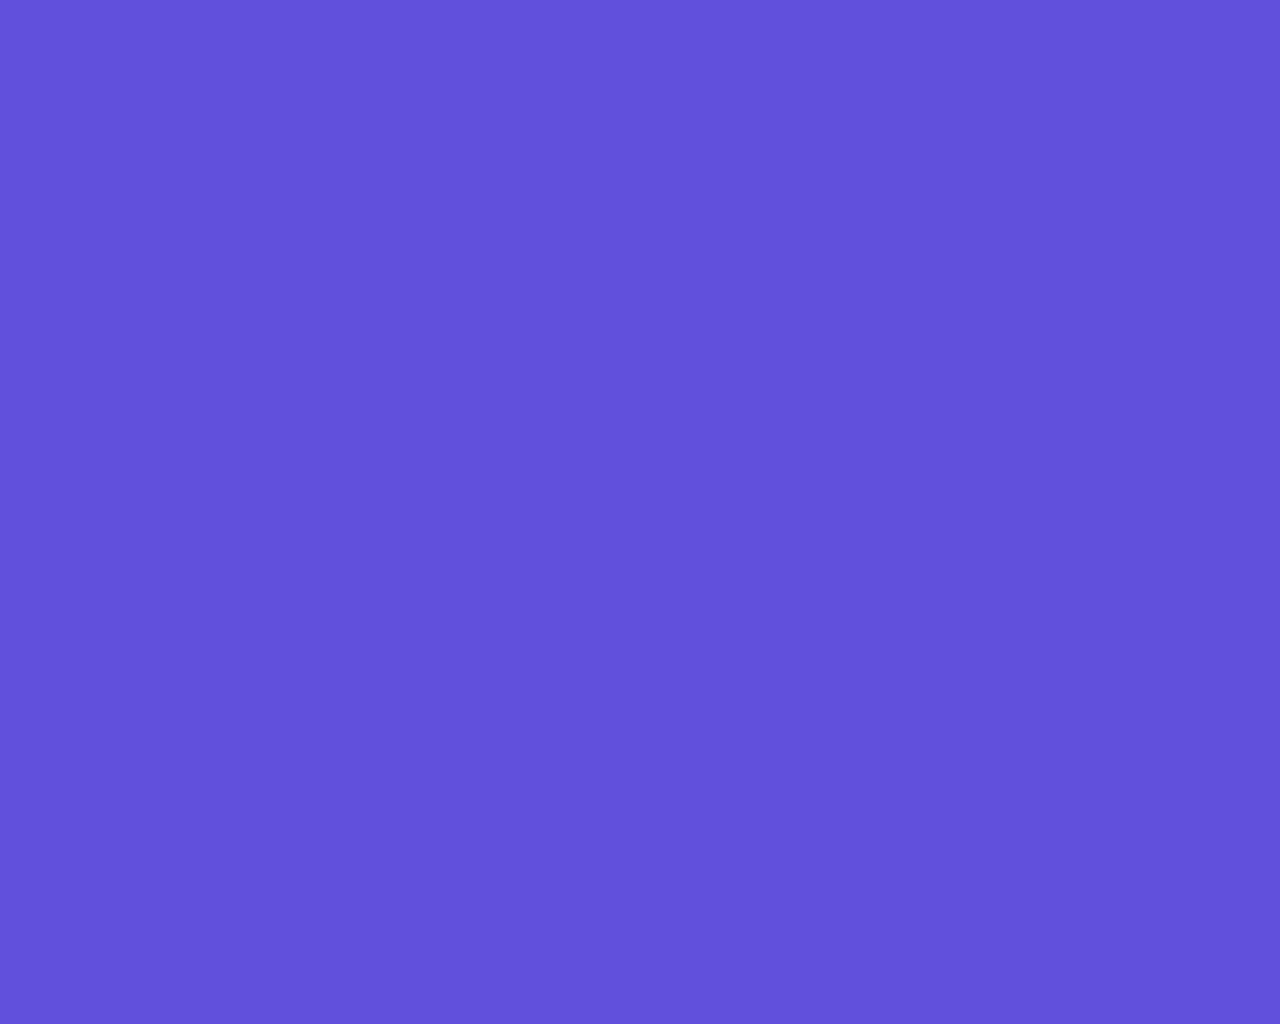 1280x1024 Majorelle Blue Solid Color Background